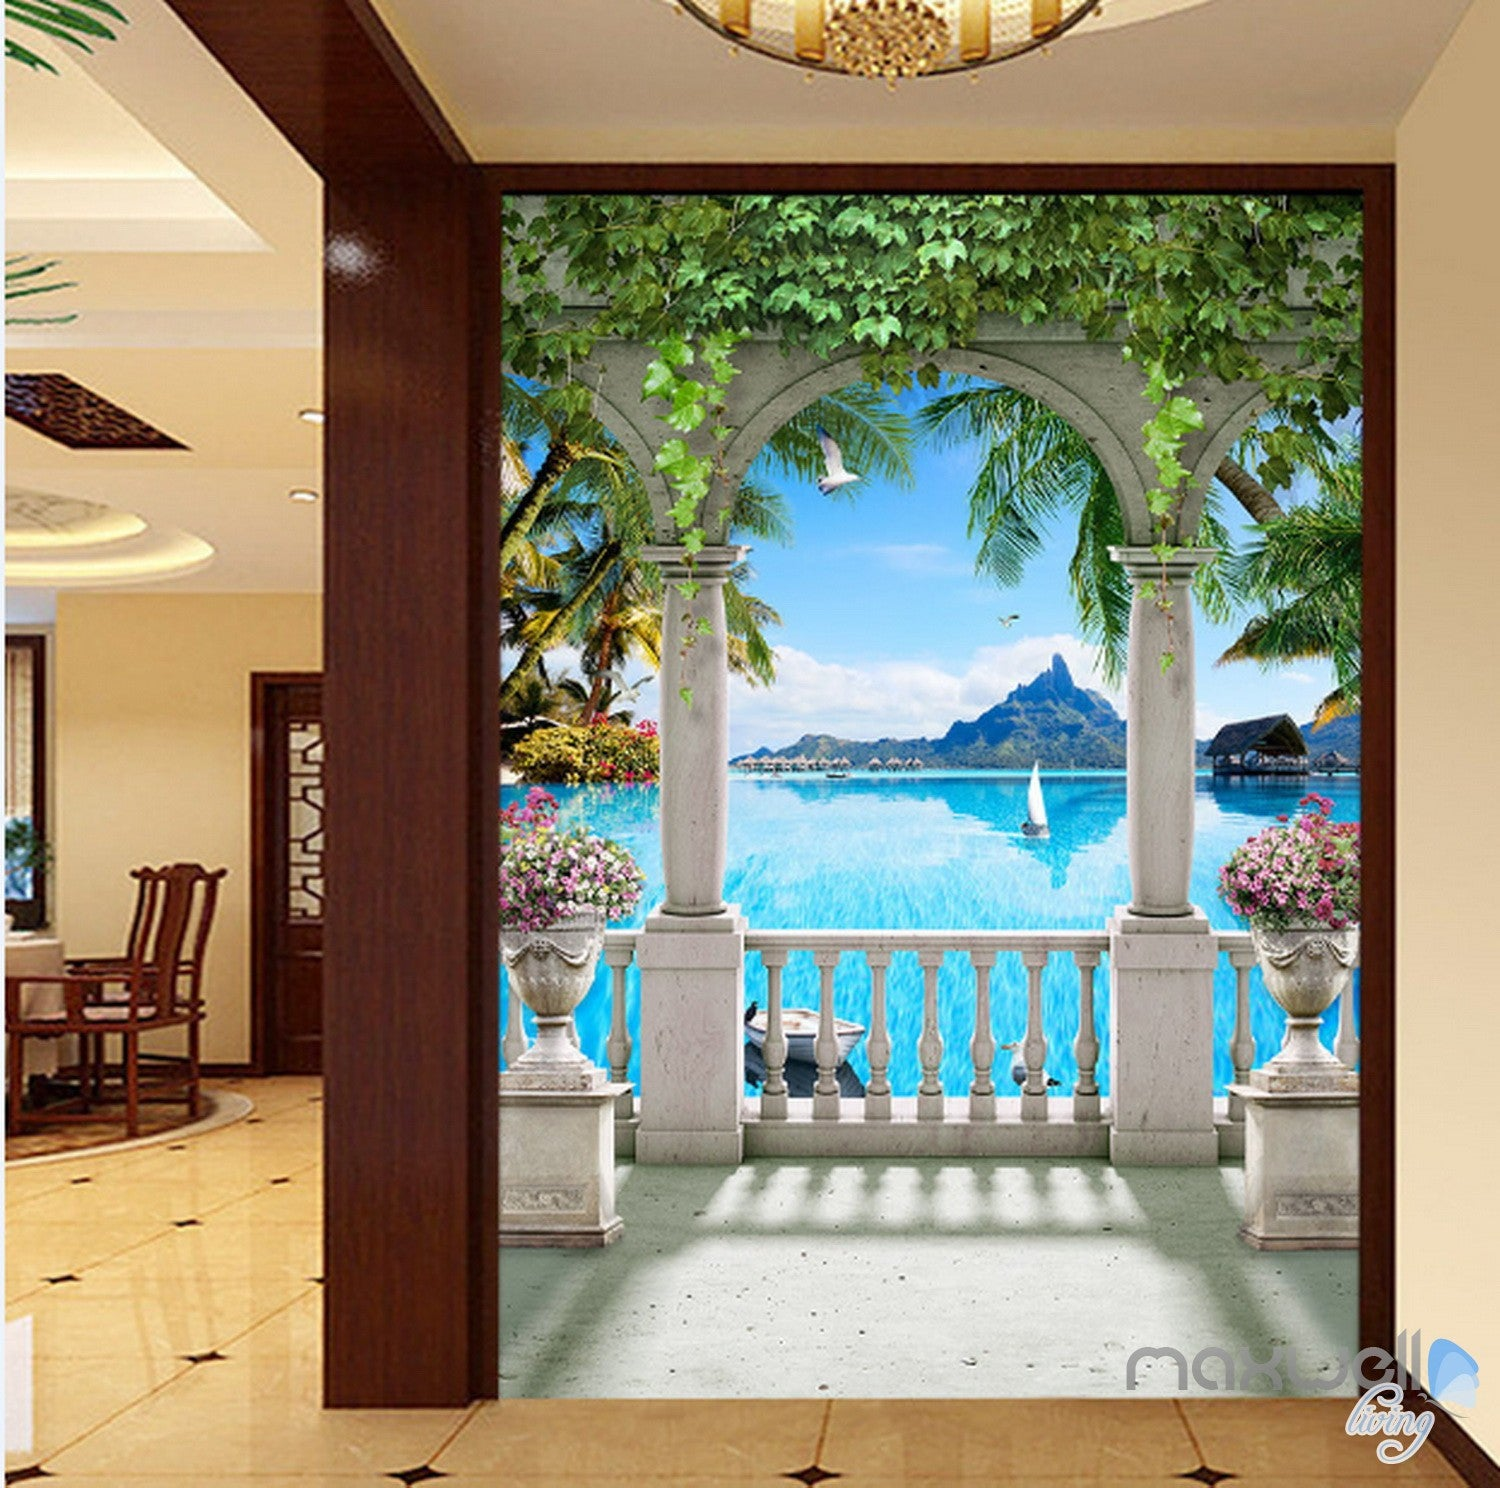 3d pillar balcony palm tree corridor entrance wall mural decals art pr idecoroom. Black Bedroom Furniture Sets. Home Design Ideas